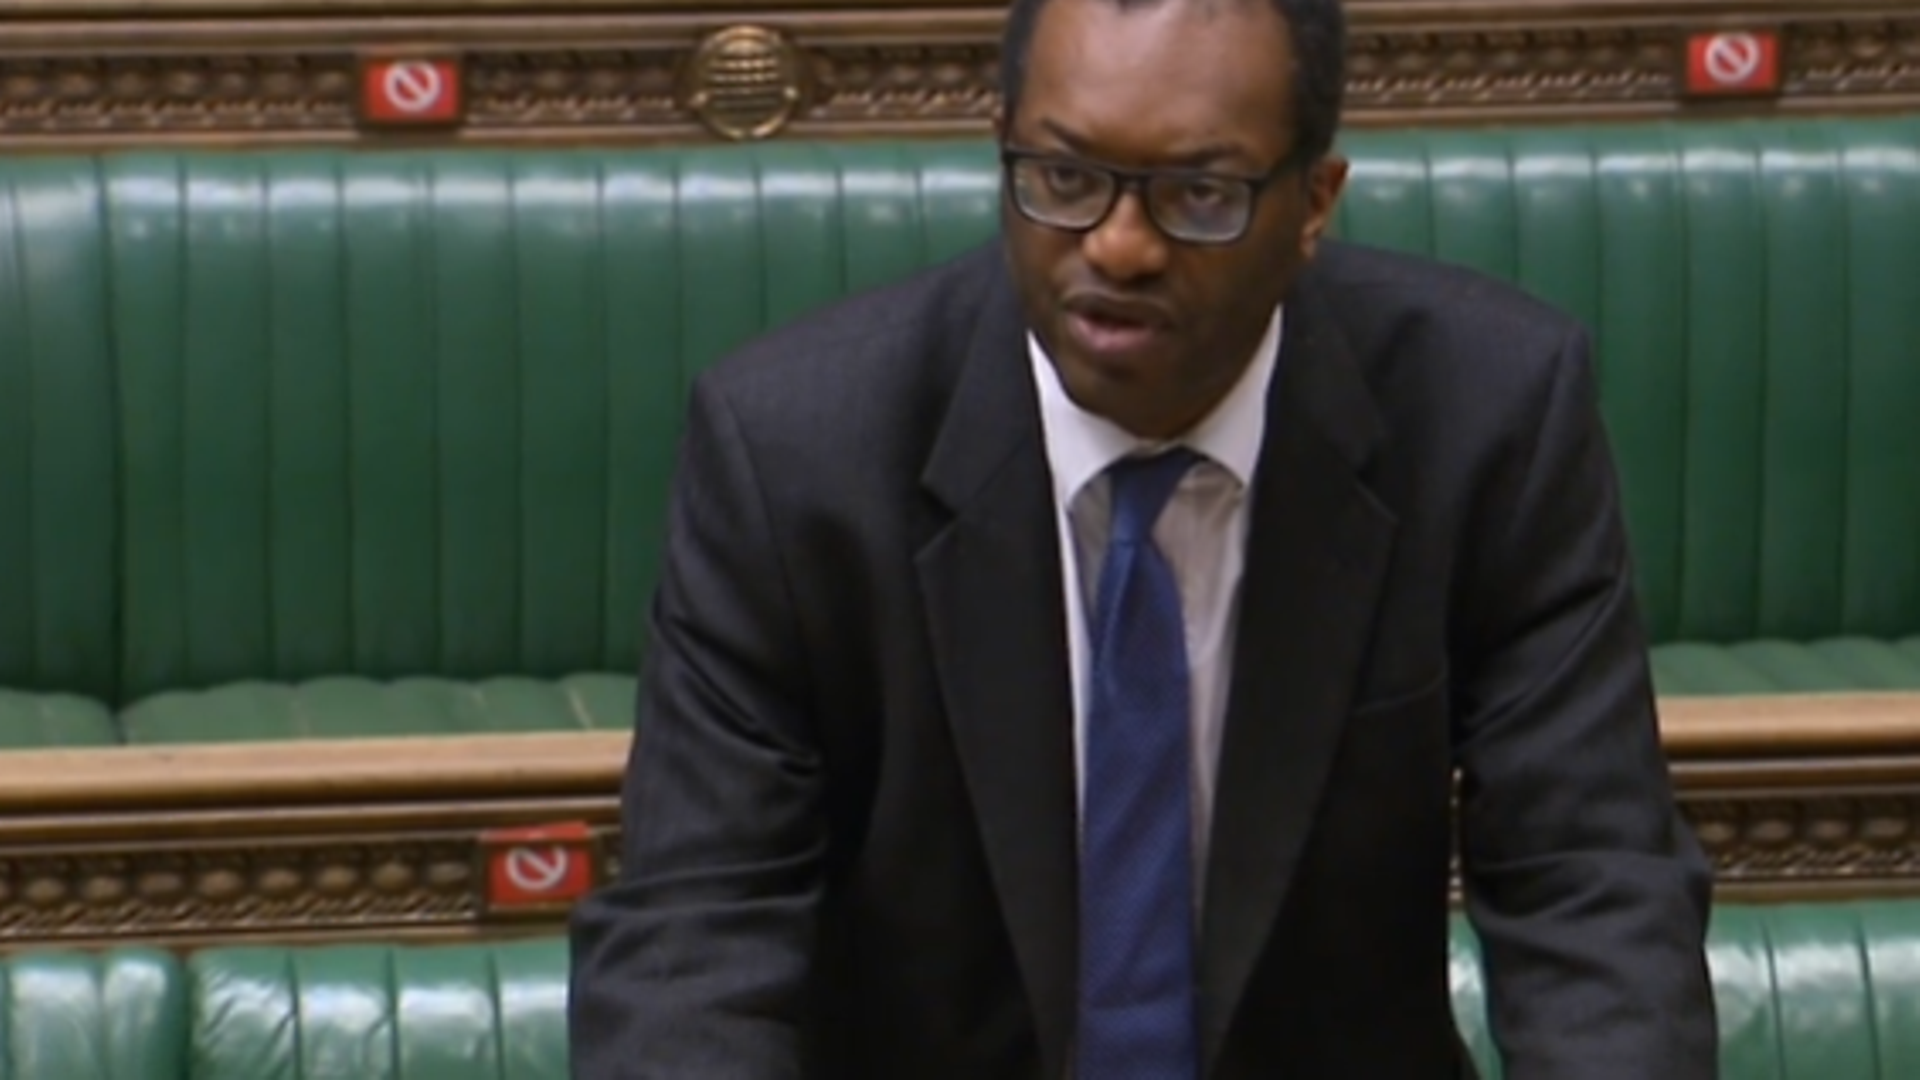 Kwasi Kwarteng responds to a debate in the House of Commons - Credit: Parliament Live